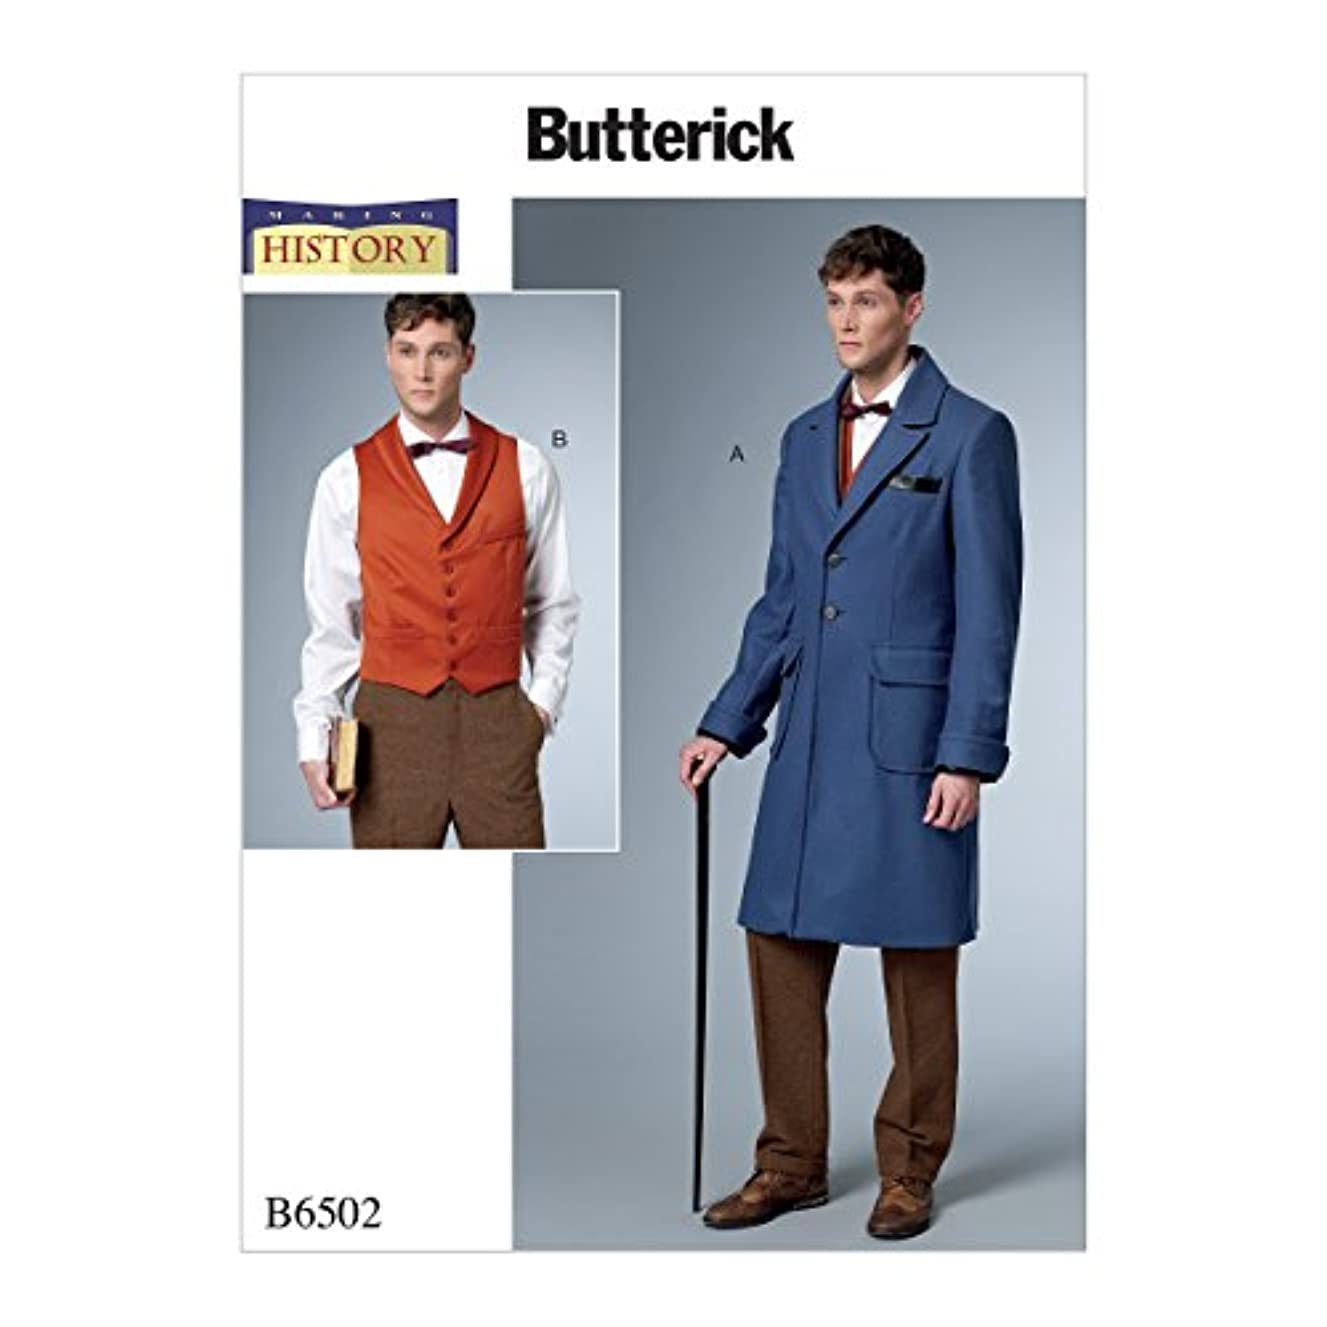 Butterick B6502MQQ Men's Historical Early 20th Century Coat and Vest Sewing Pattern, Sizes 38-44